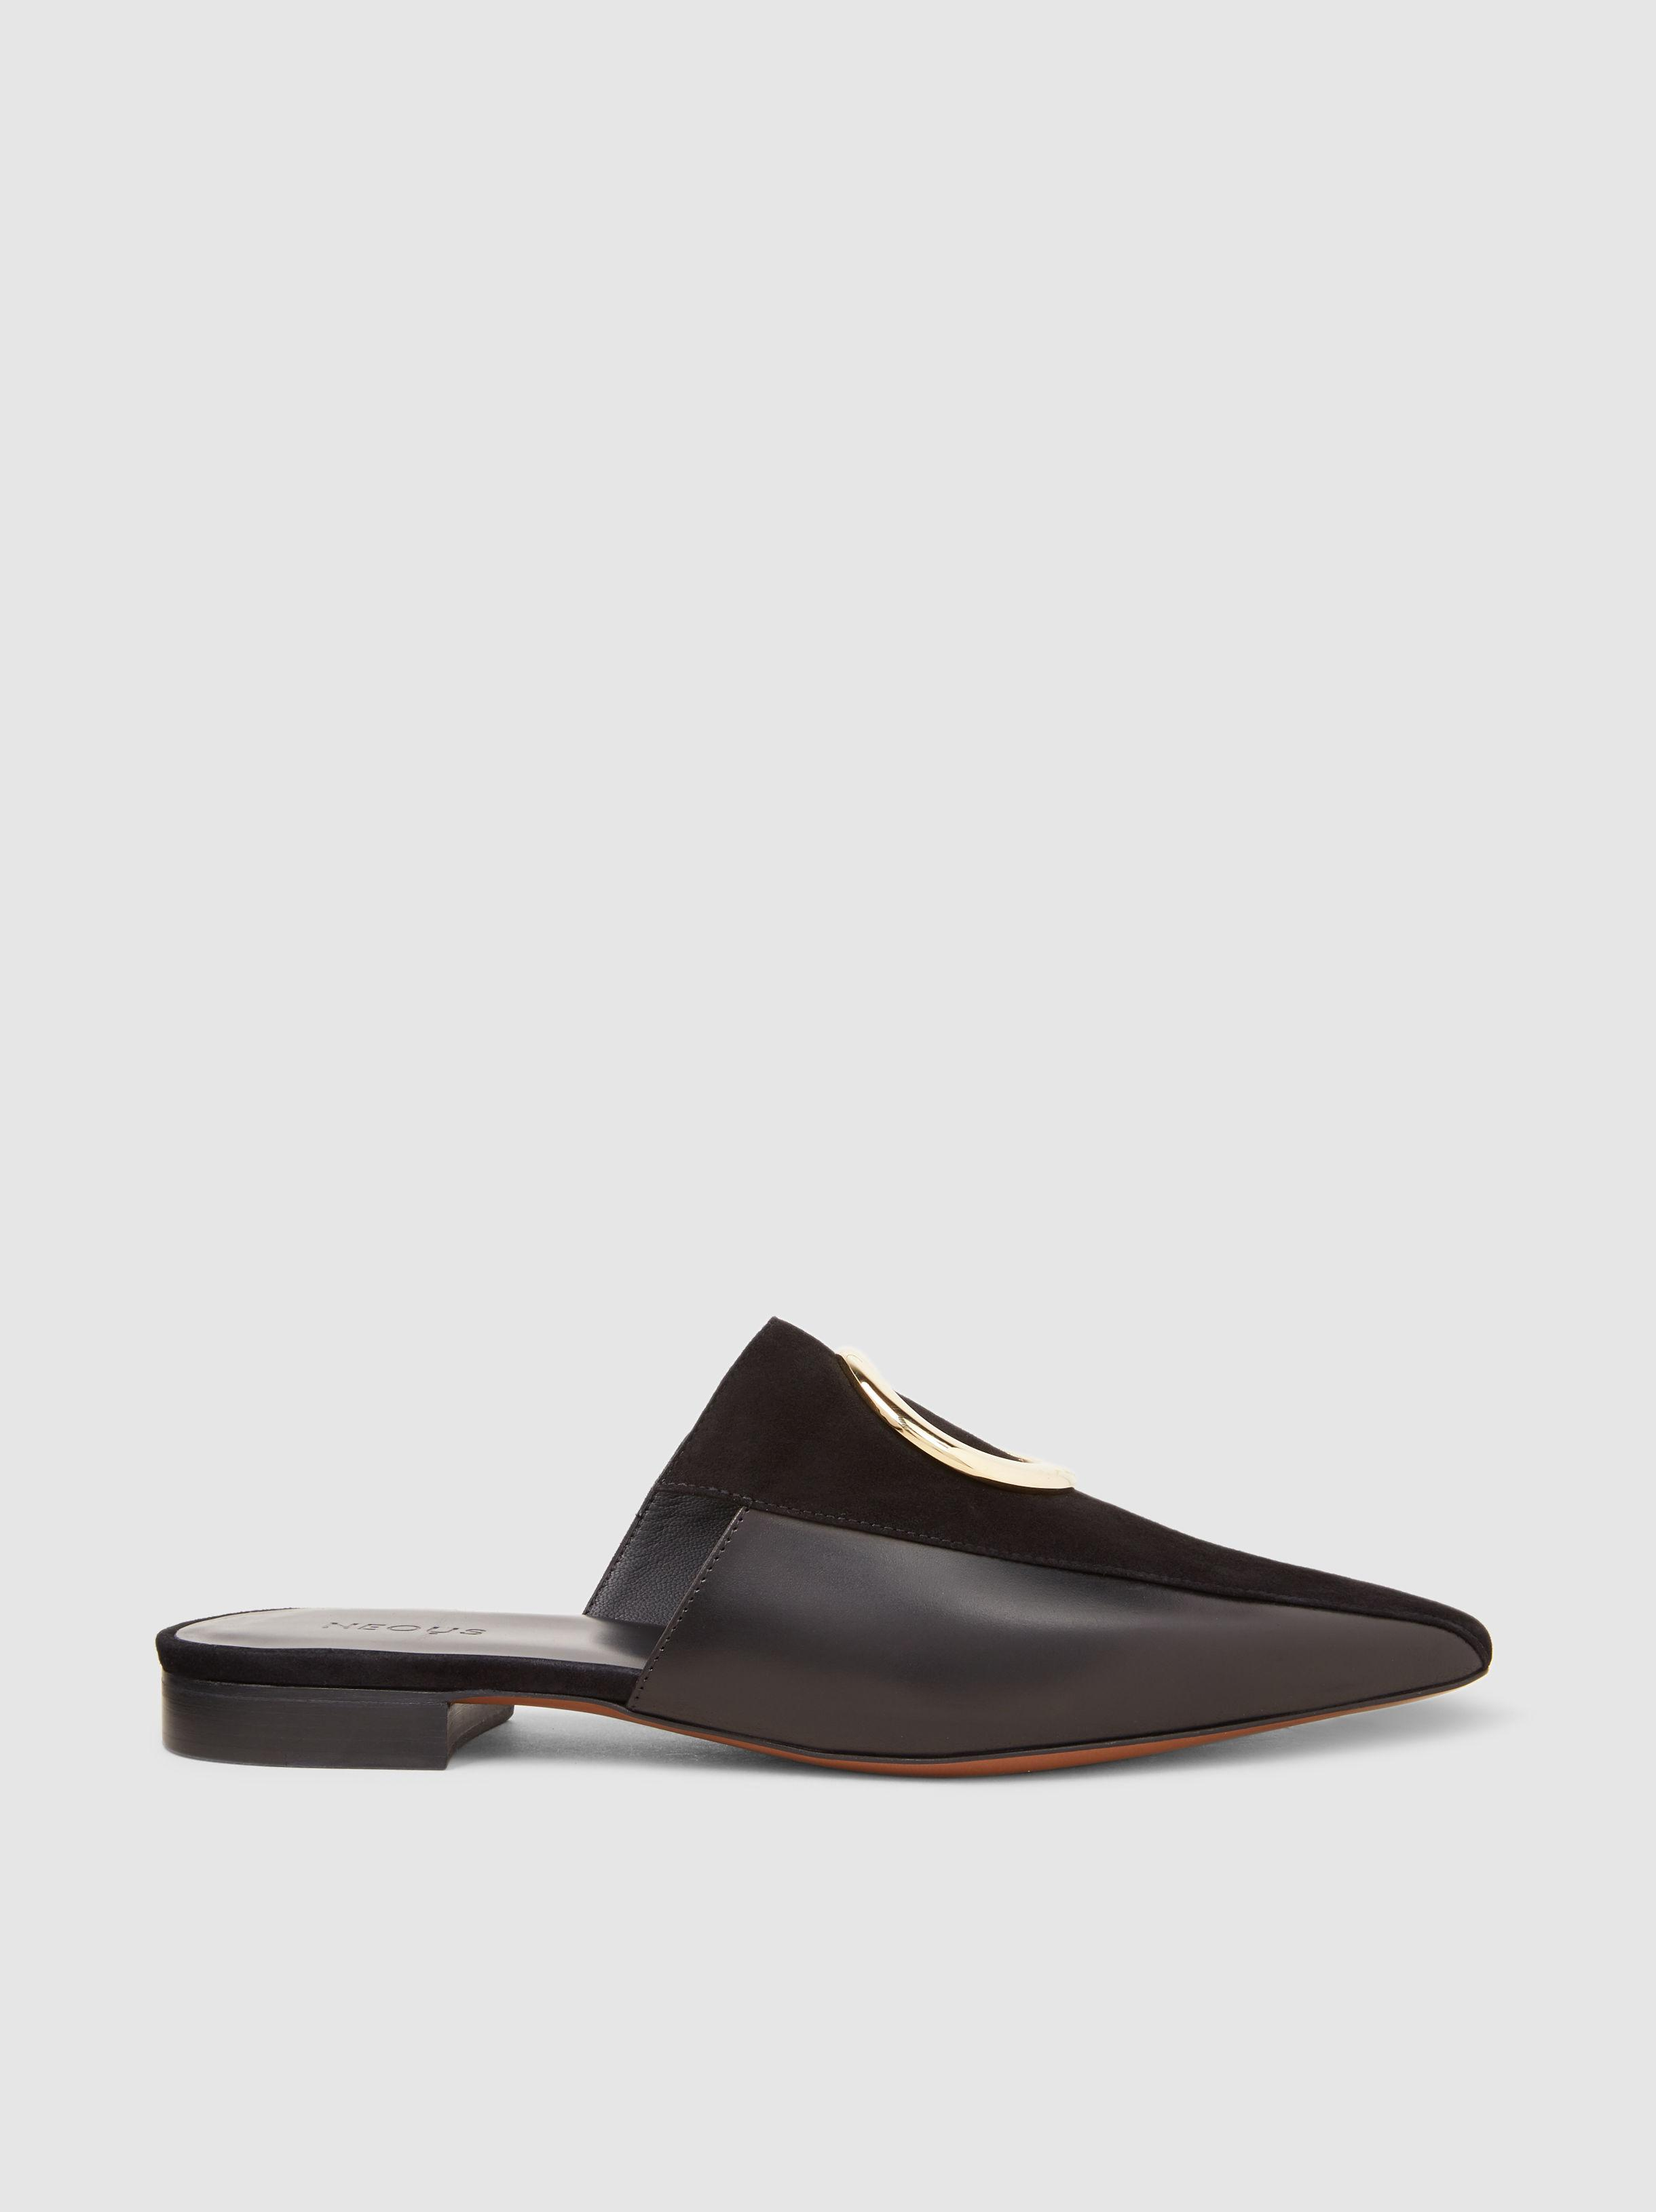 Neous Phaius Embellished Leather and Suede Slippers 2018 Cheap Online rNJkqM2P